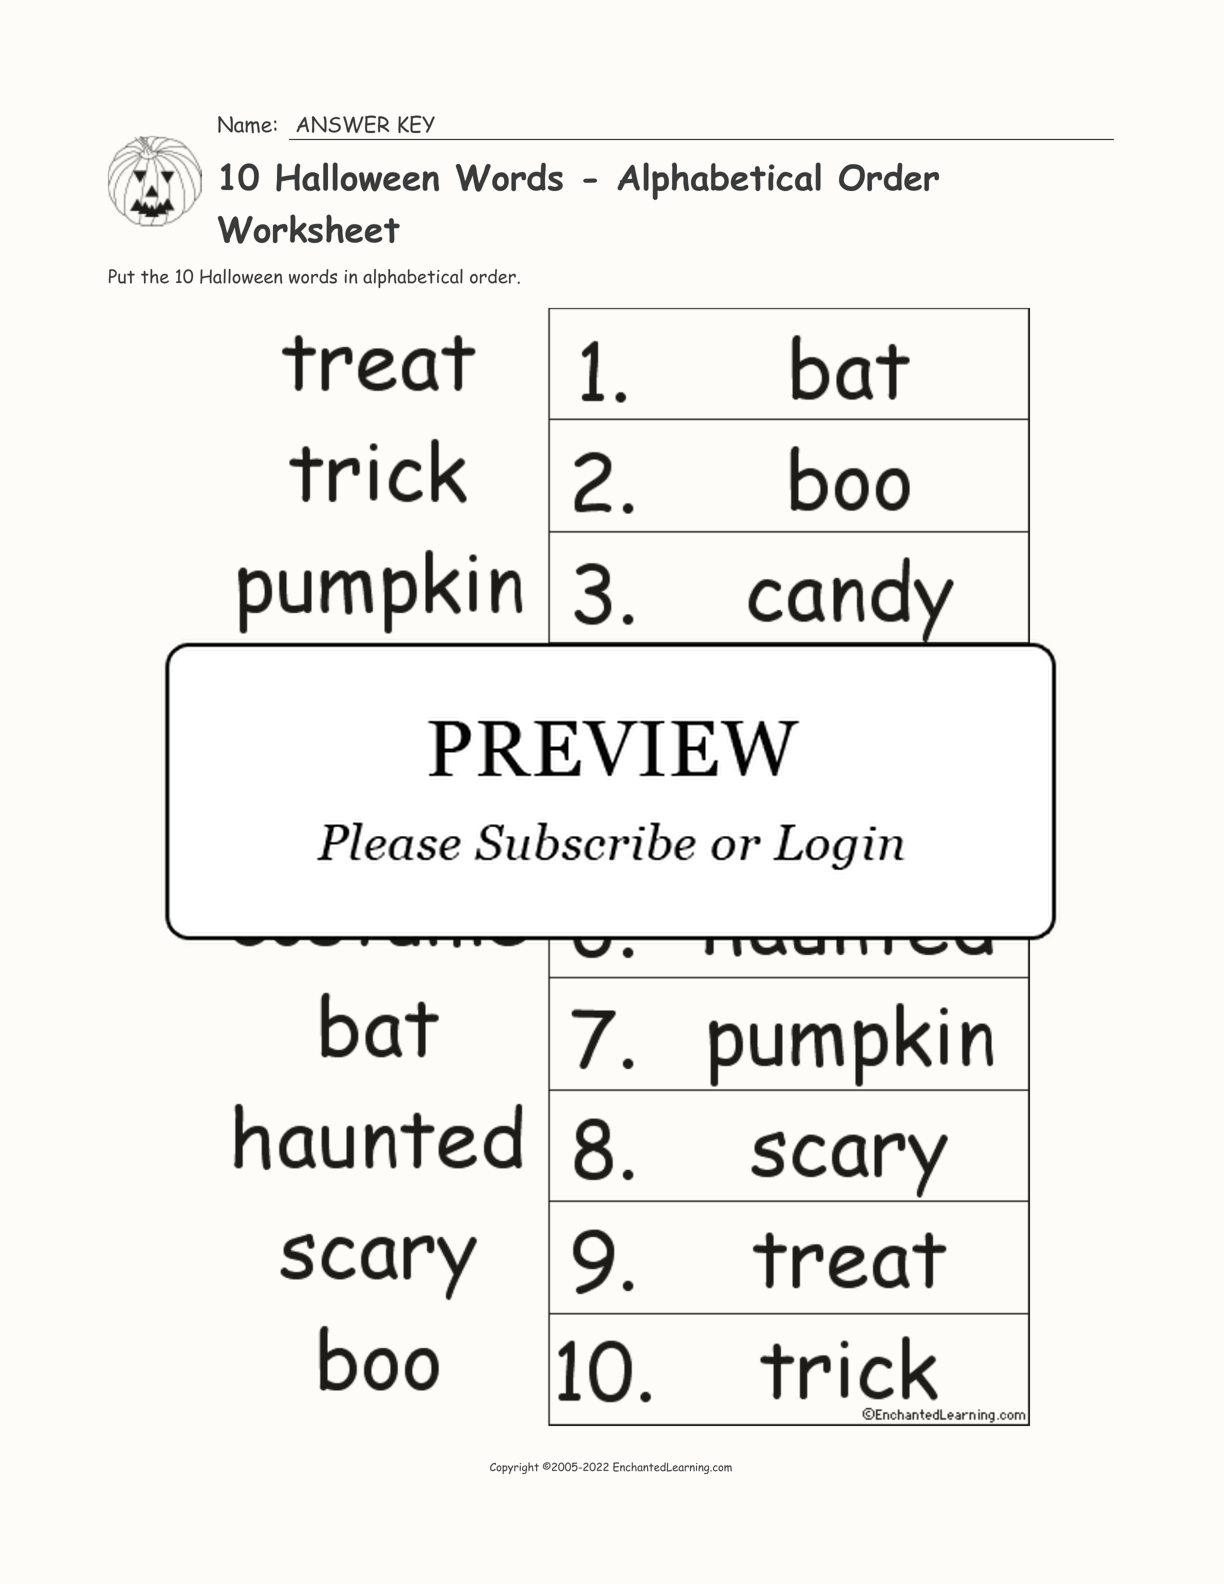 hight resolution of 10 Halloween Words - Alphabetical Order Worksheet - Enchanted Learning